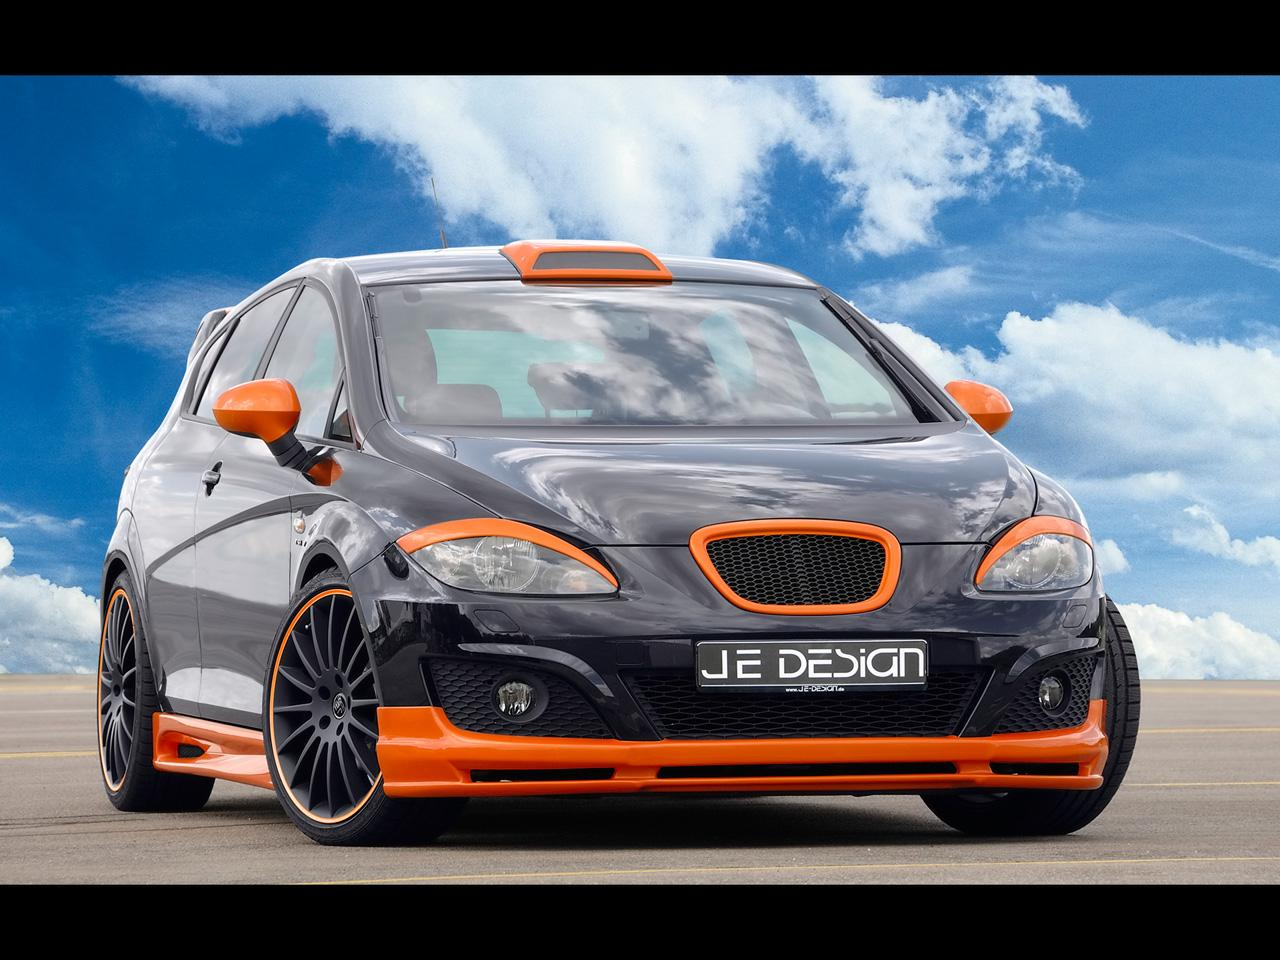 2009 Je Design Seat Leon Wallpapers By Cars Wallpapersnet